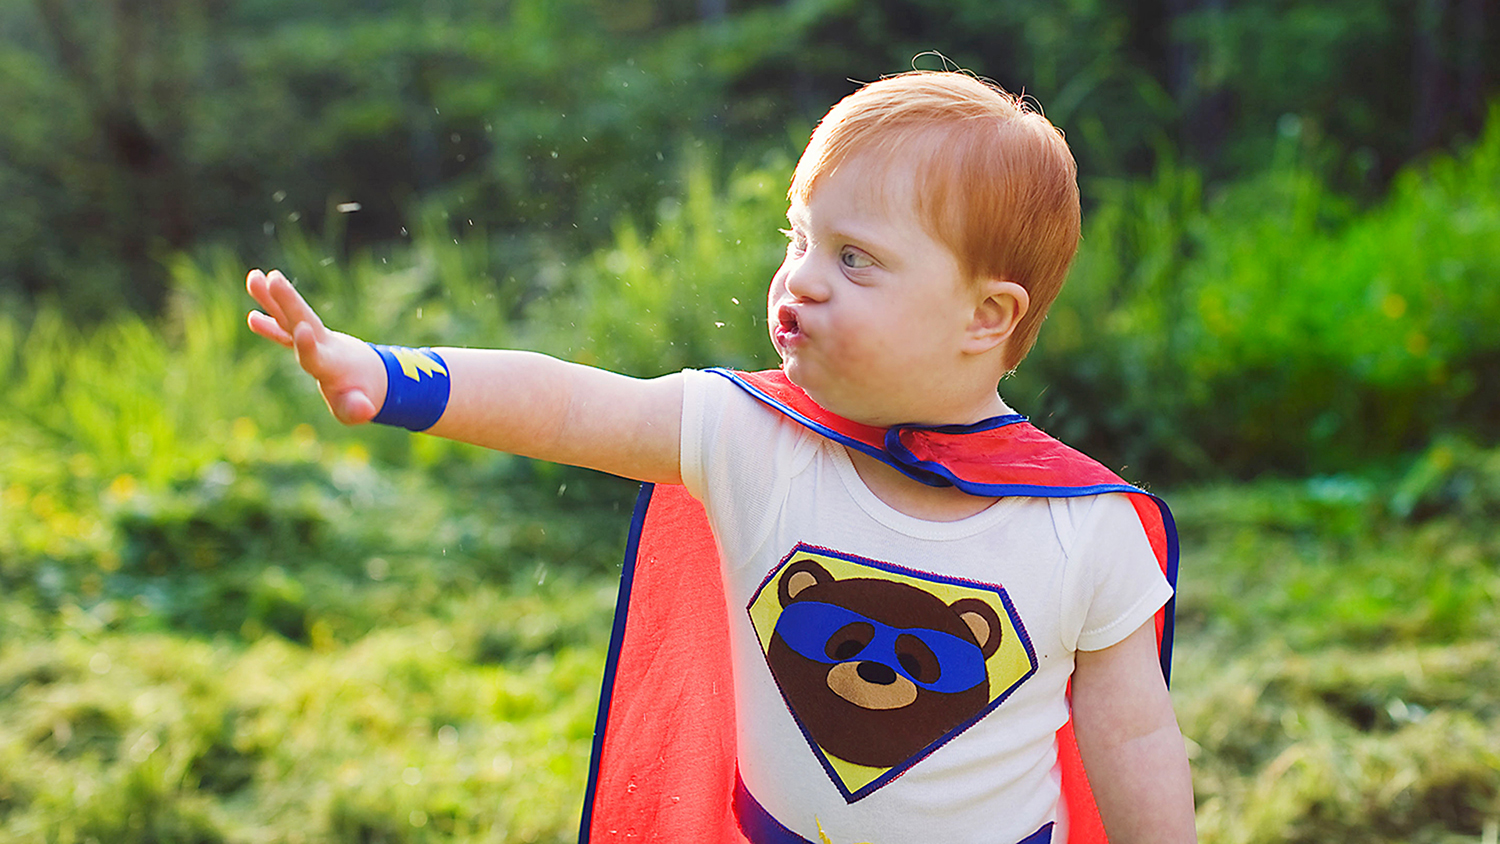 The Superhero Project Features Kids With Special Needs